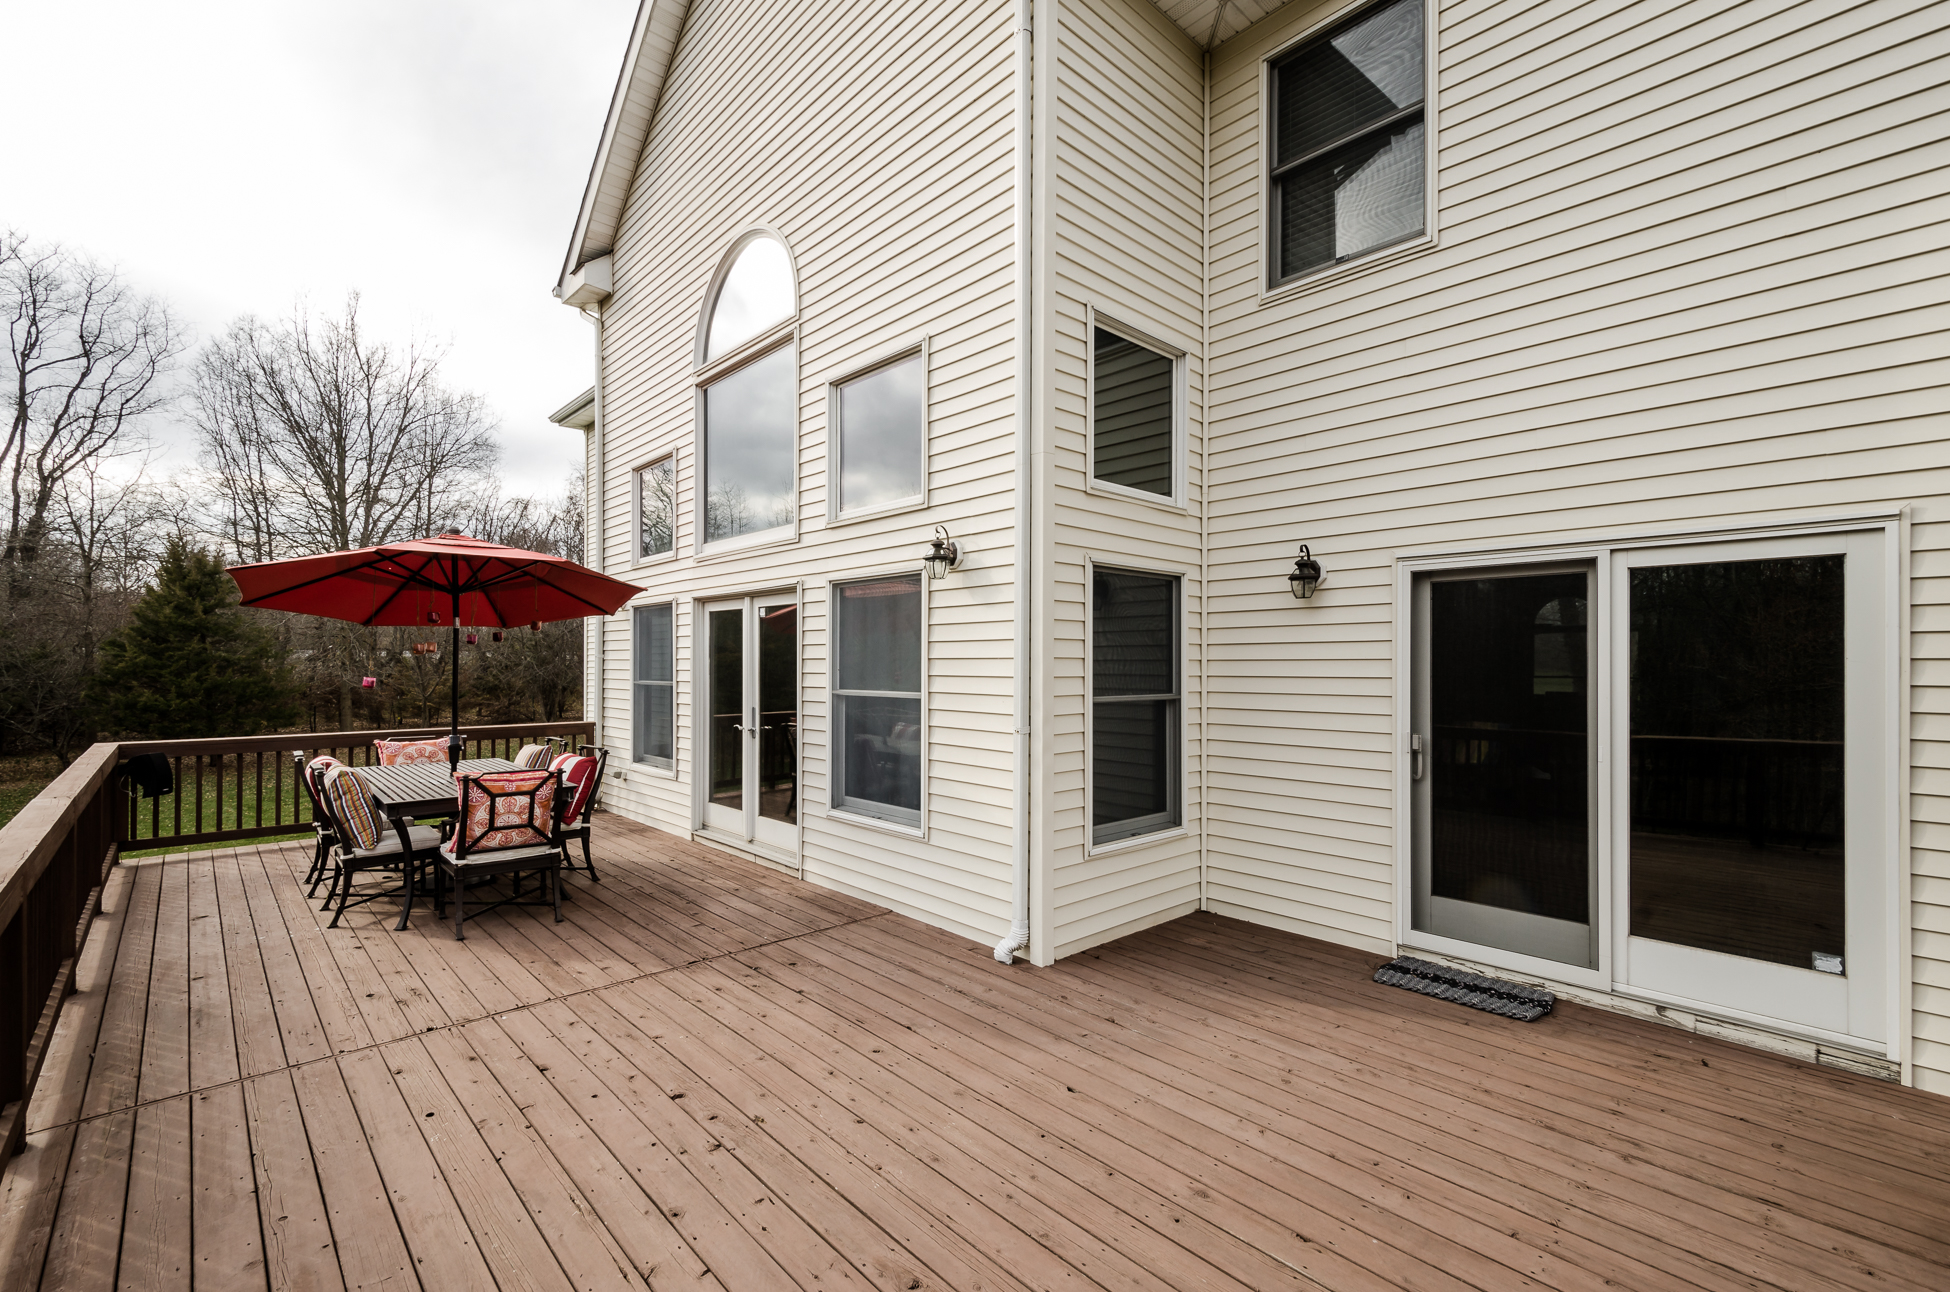 Additional photo for property listing at Space, Style, Function - Hopewell Township 32 Lake Baldwin Drive Pennington, Нью-Джерси 08534 Соединенные Штаты